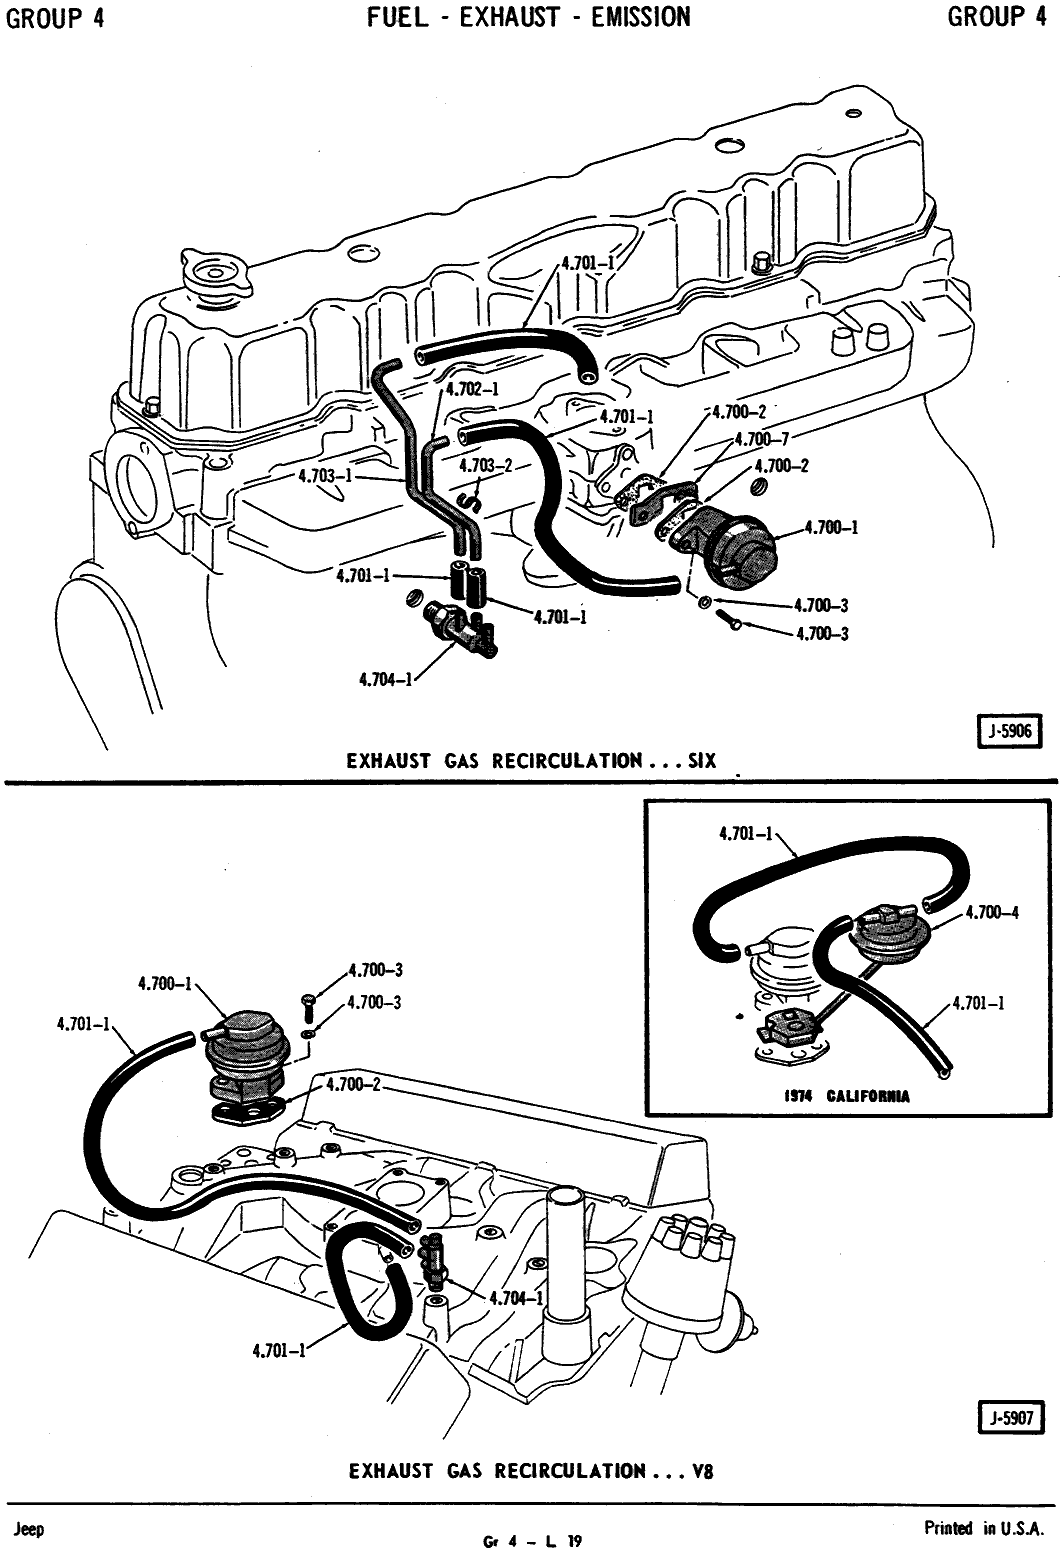 hight resolution of 1990 jeep fuel system diagram wiring diagram source 1990 jeep wrangler engine 1990 jeep wrangler fuel system diagram